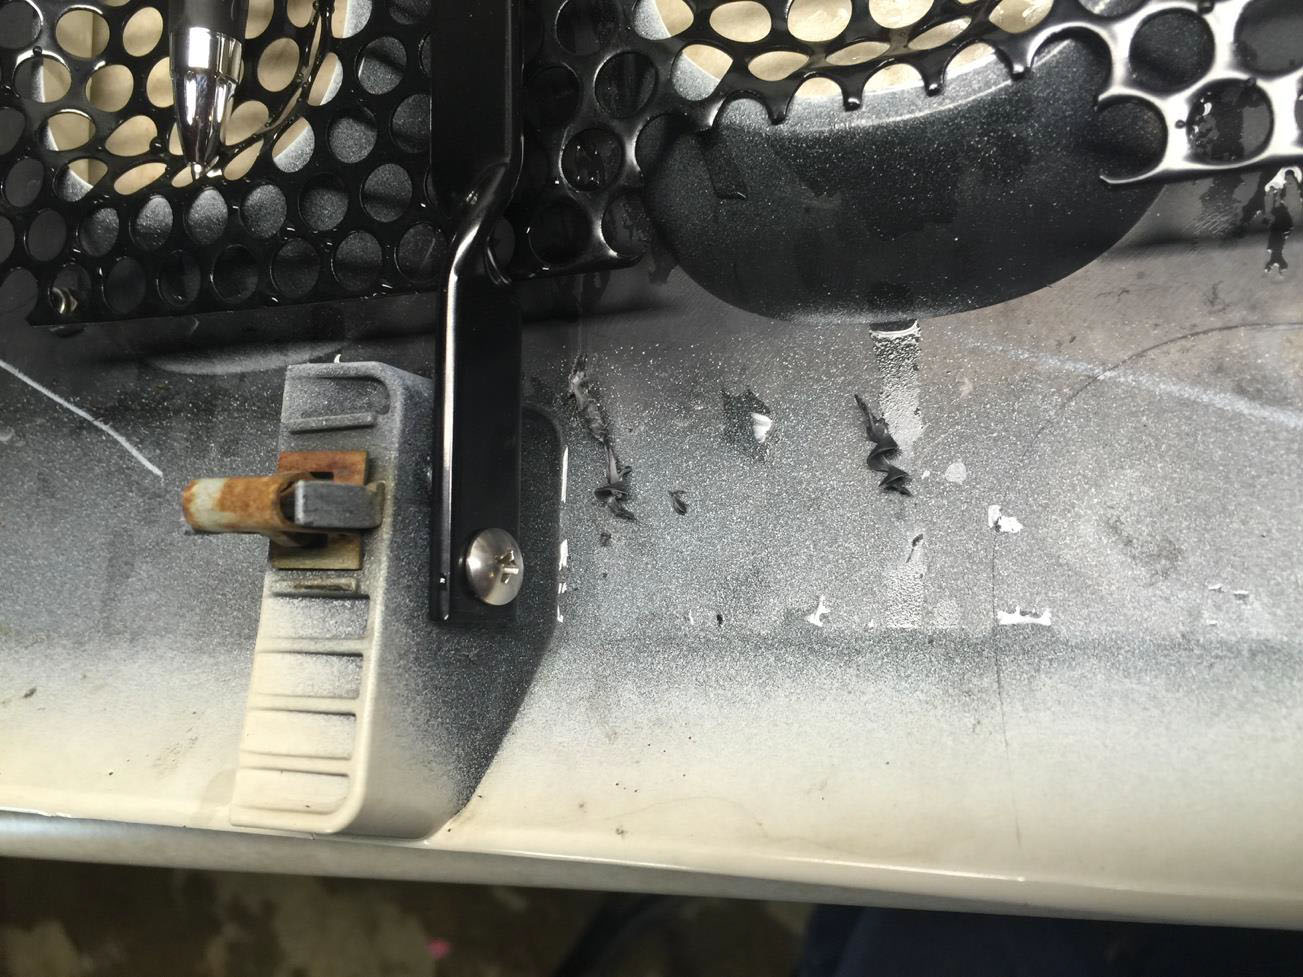 How To Install Rugged Ridge Perforated Grille Insert In Black On A 1999 Jeep Wrangler Clutch Retainer Reinstall Grill Onto Vehicle Make Sure All Retainers At Bottom Of The And By Fog Lights Are Firmly Seated Clips Along Top